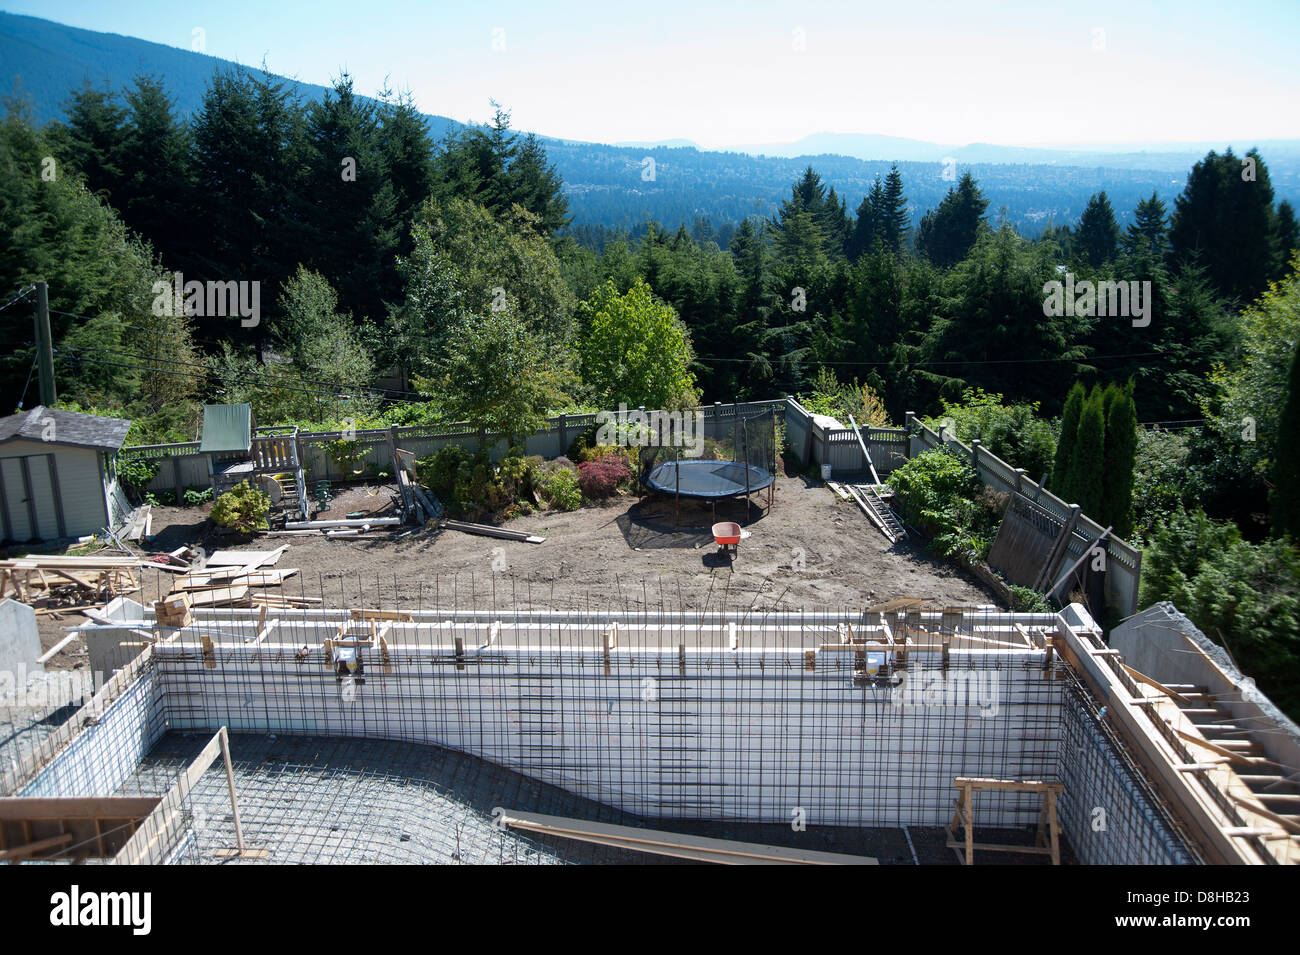 Construction for a  backyard swimming pool being built in West Vancouver, British Columbia, Canada - Stock Image